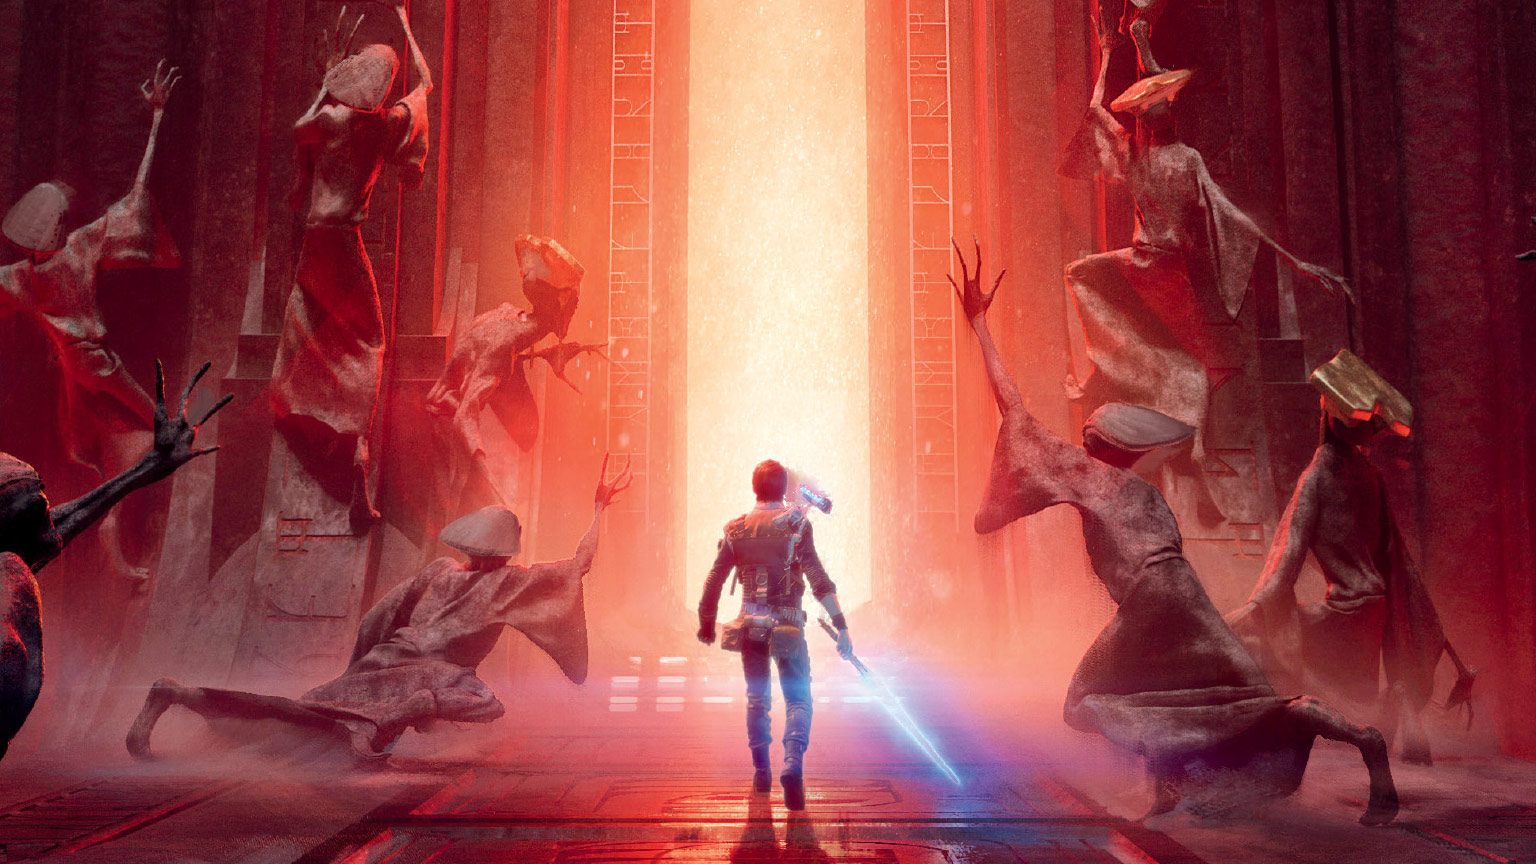 Cal Kestis on the cover of The Art of Star Wars Jedi: Fallen Order